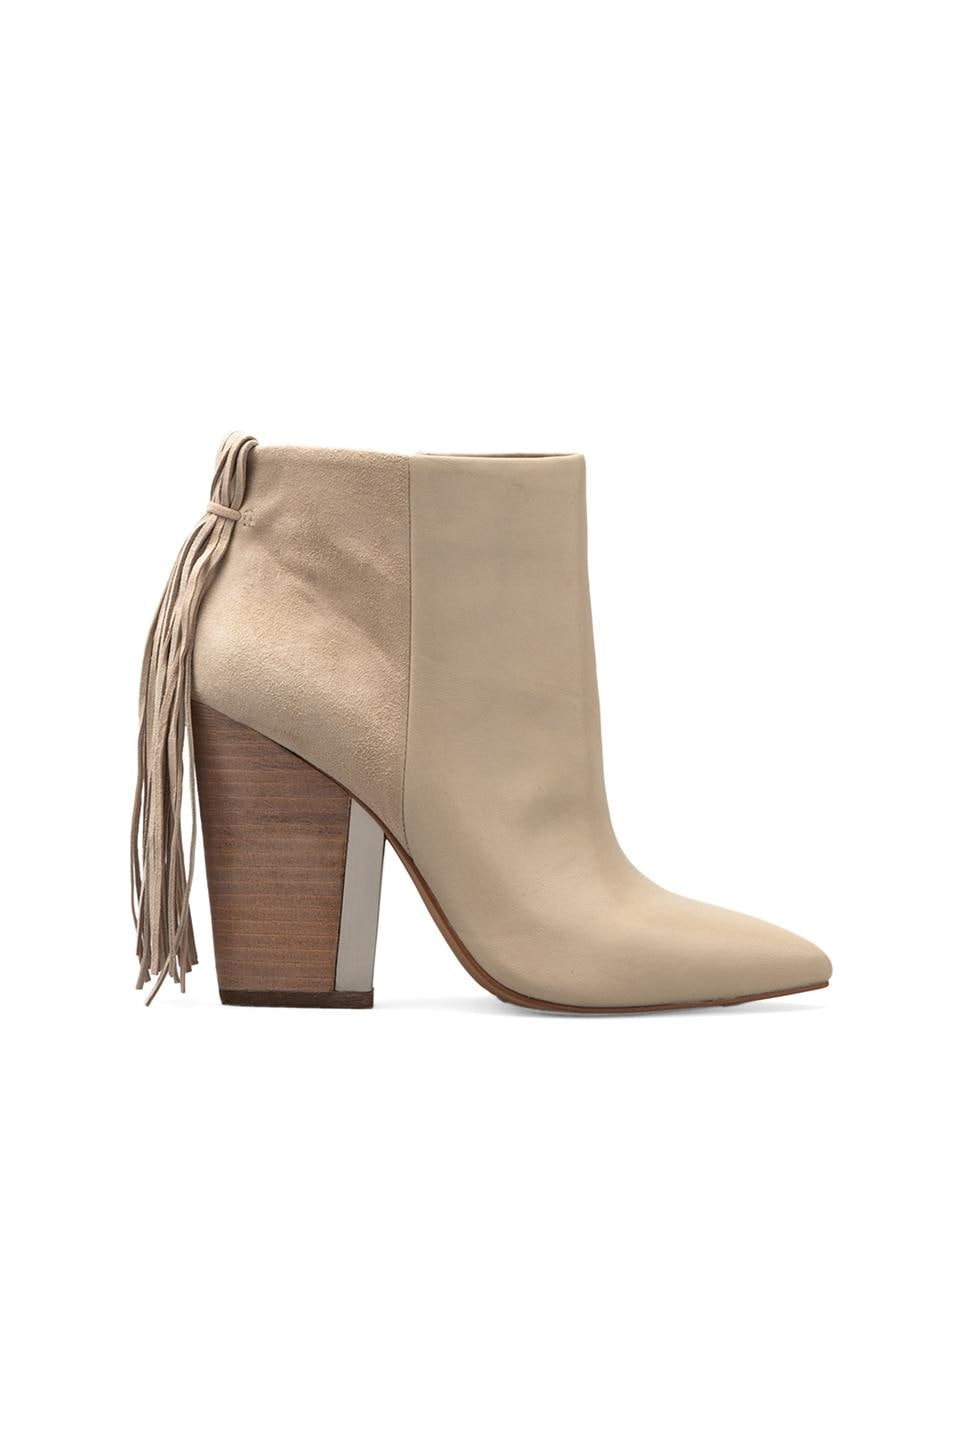 Sam Edelman Mariel Boot in Ivory/Ice White